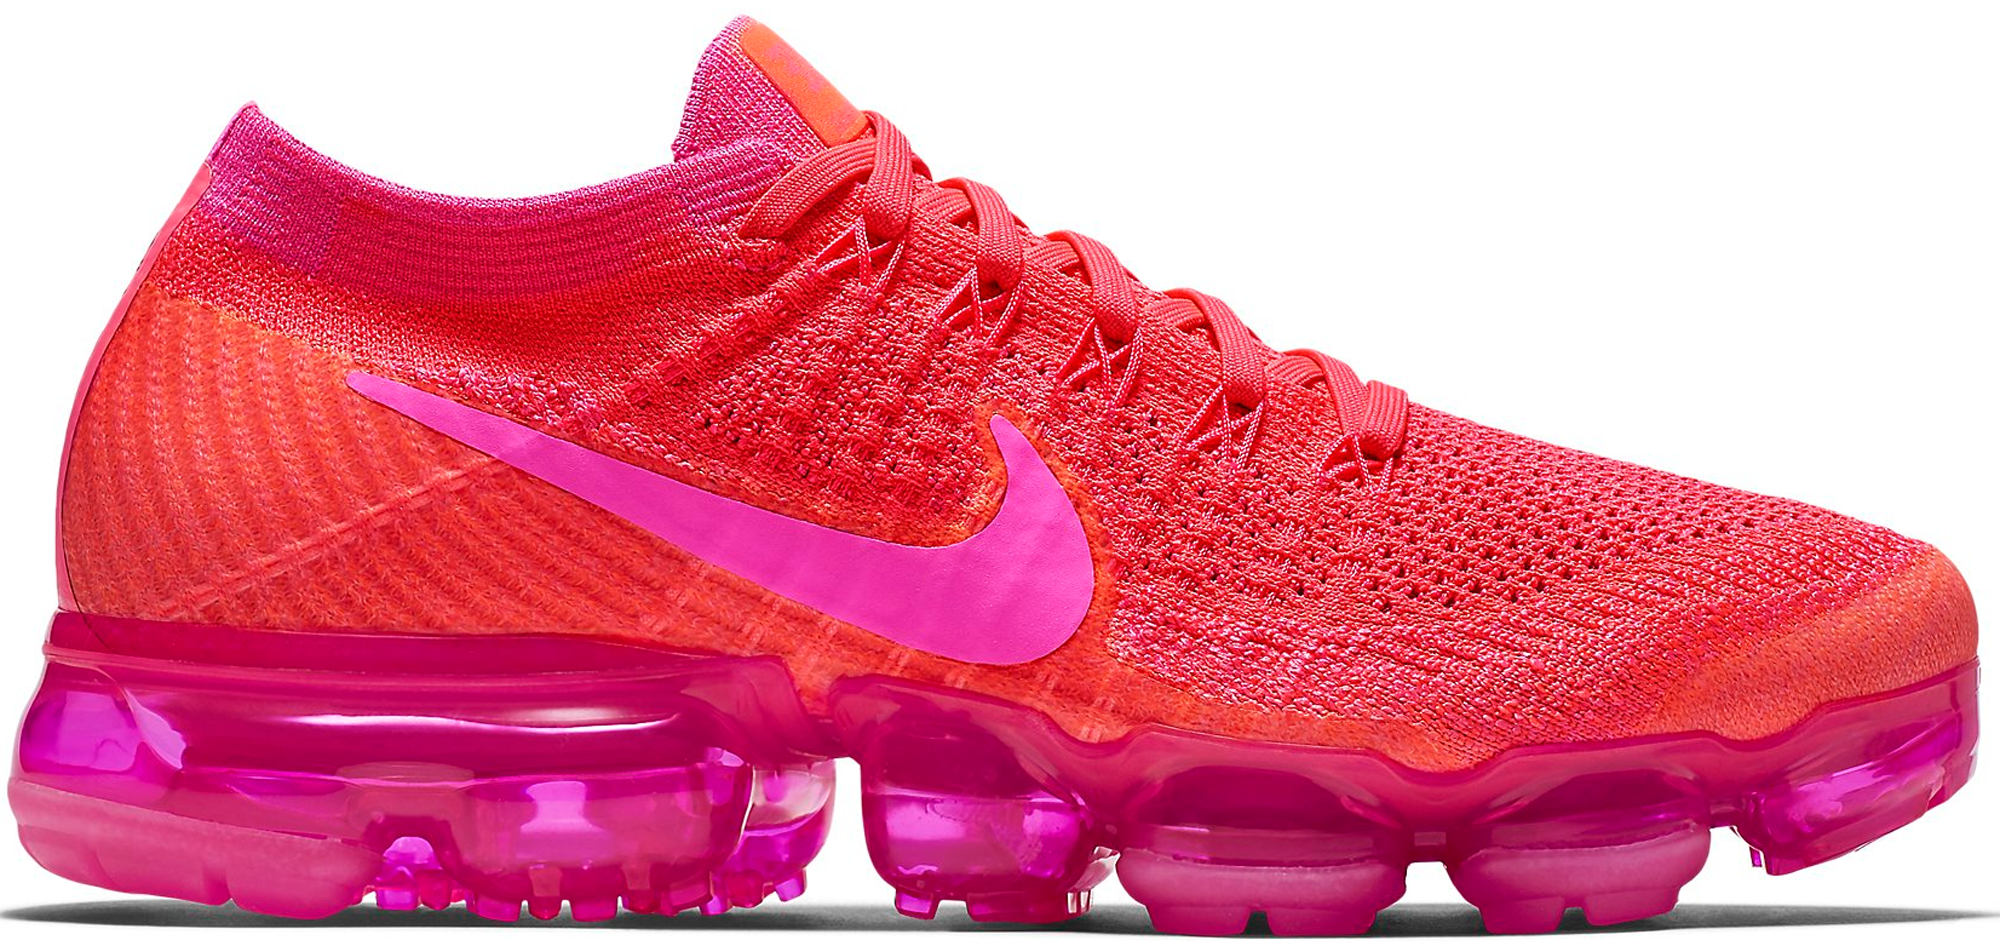 a0eb82251e Women's Nike Air VaporMax Flyknit Hyper Punch - StockX News